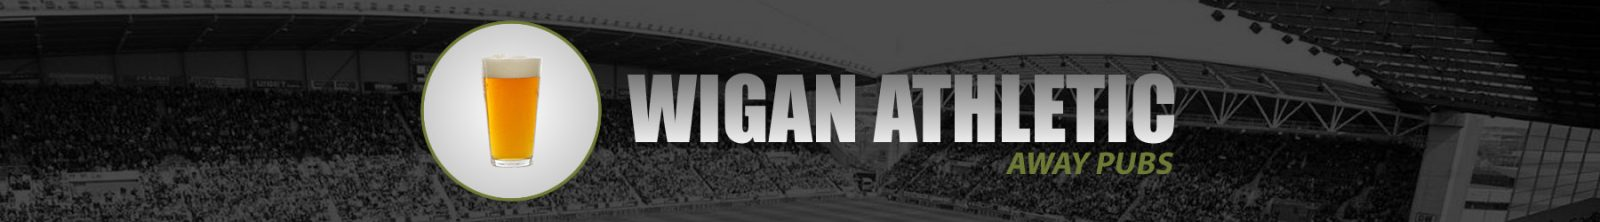 Wigan Athletic Away Pubs